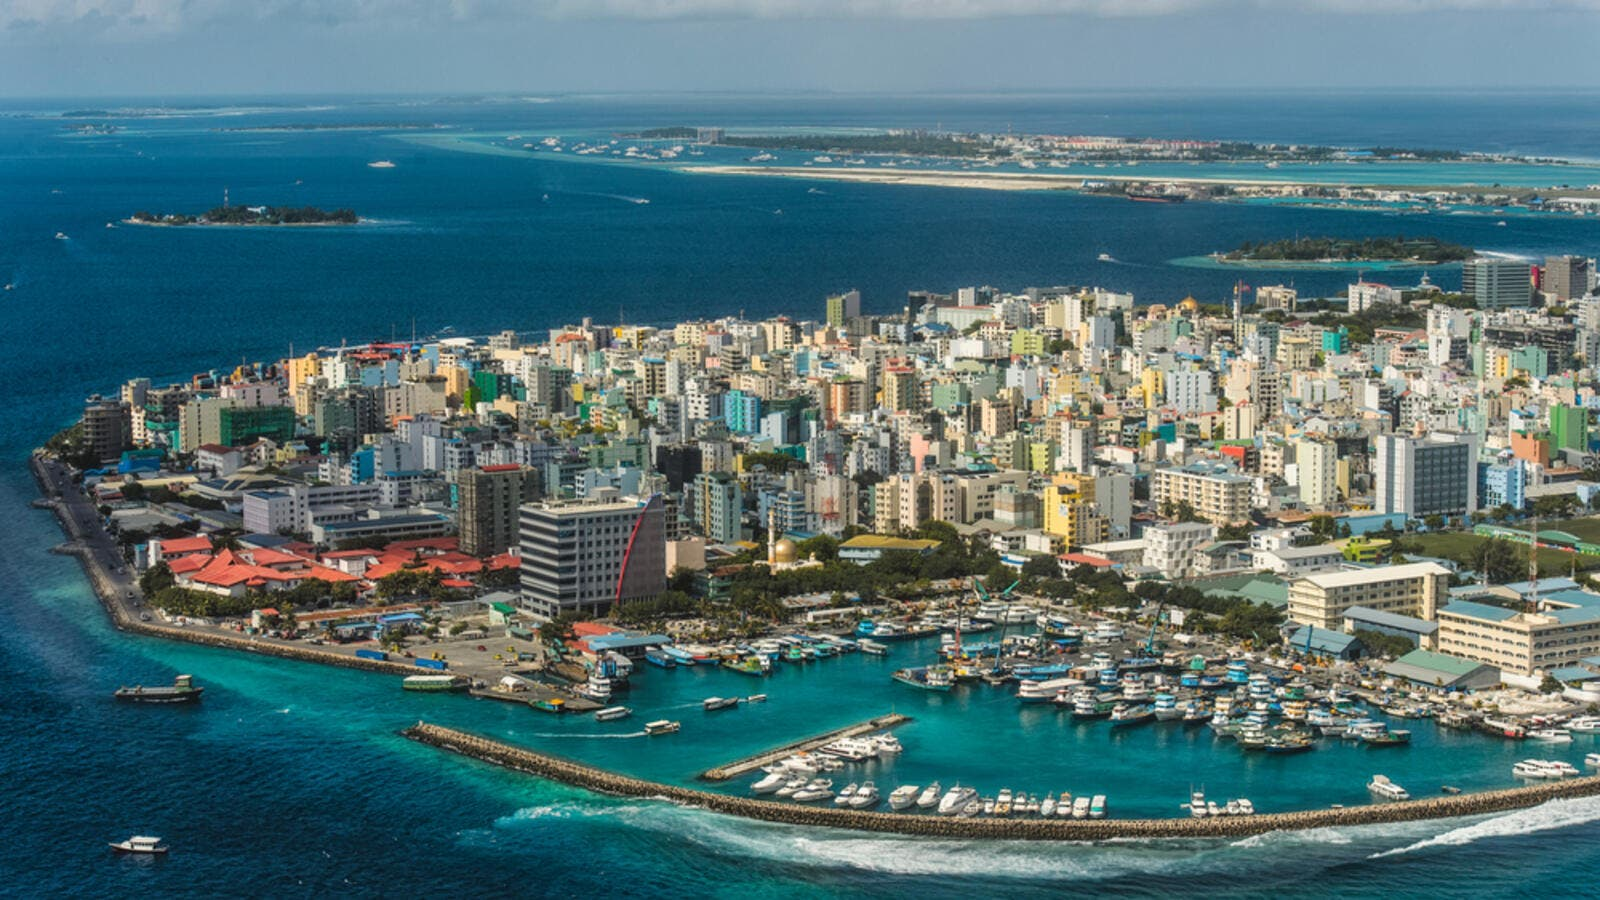 Maldivian capital from above (Shutterstock)